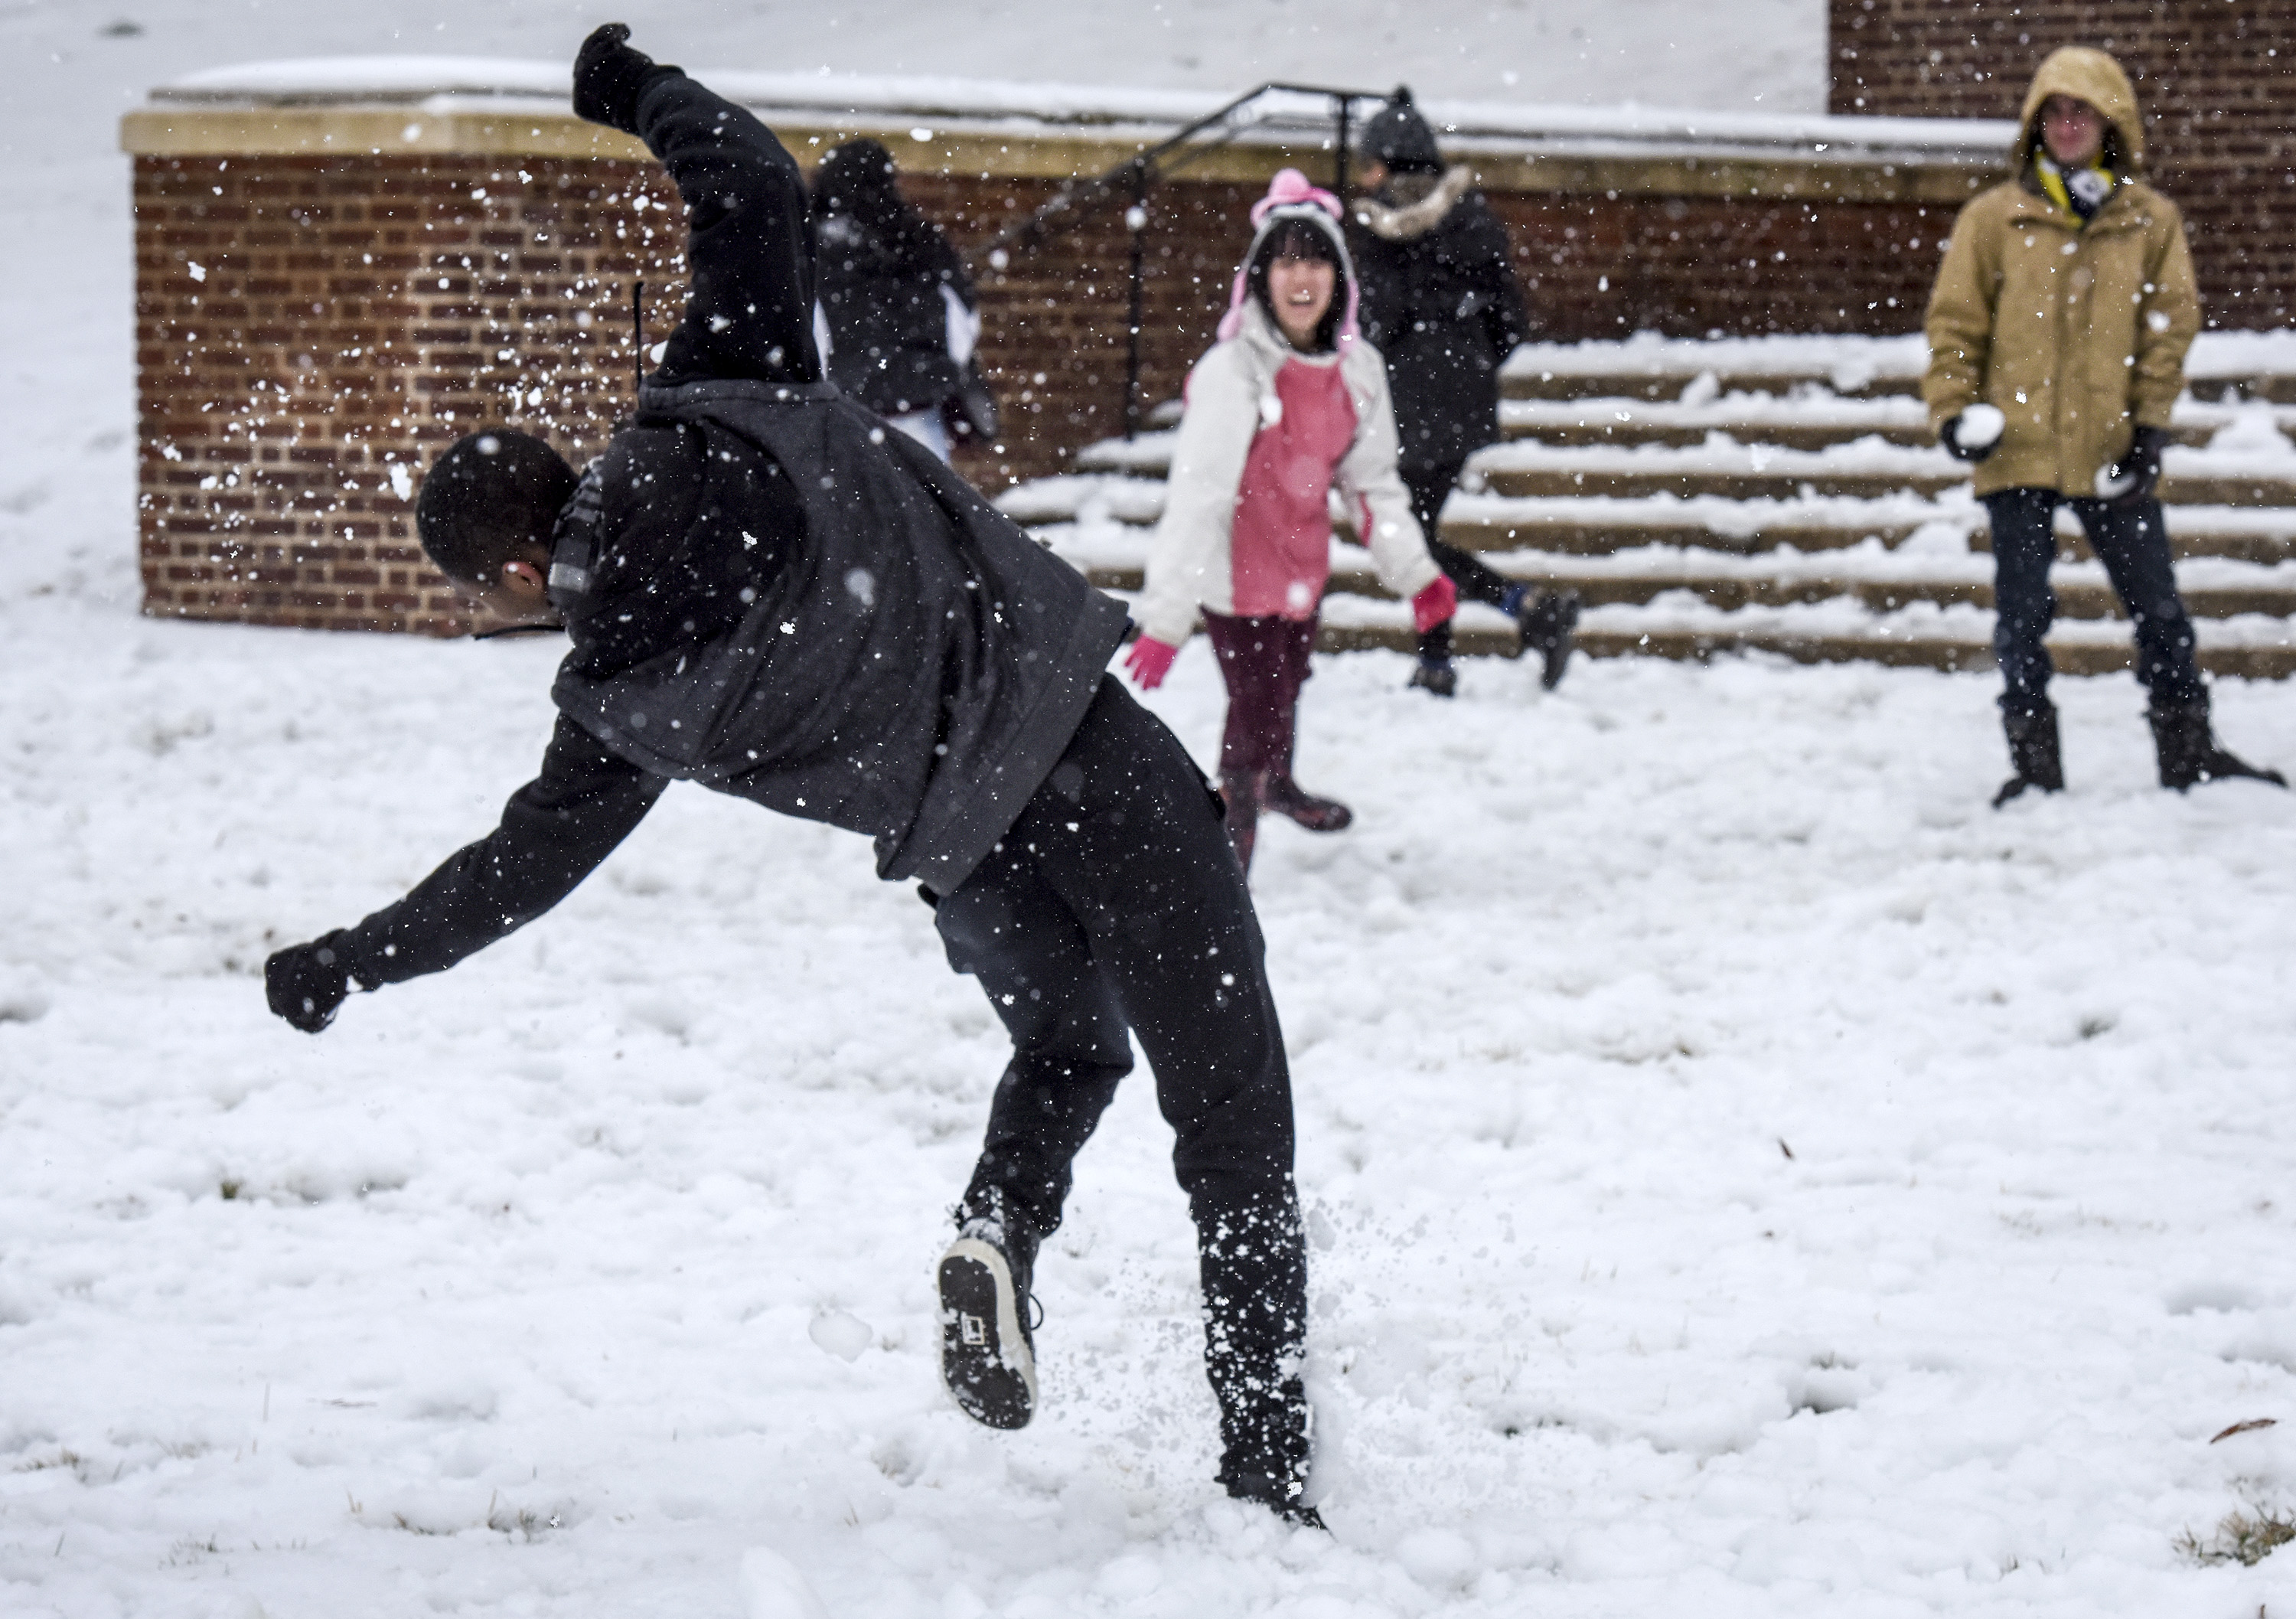 COLLEGE PARK, MD - MARCH 14:                       Freshman Chika Okusogu tries to dodge an icy snowball on campus at the University of Maryland after the first significant winter storm of the season on March, 14, 2017 in College Park, MD.                        (Photo by Bill O'Leary/The Washington Post via Getty Images)